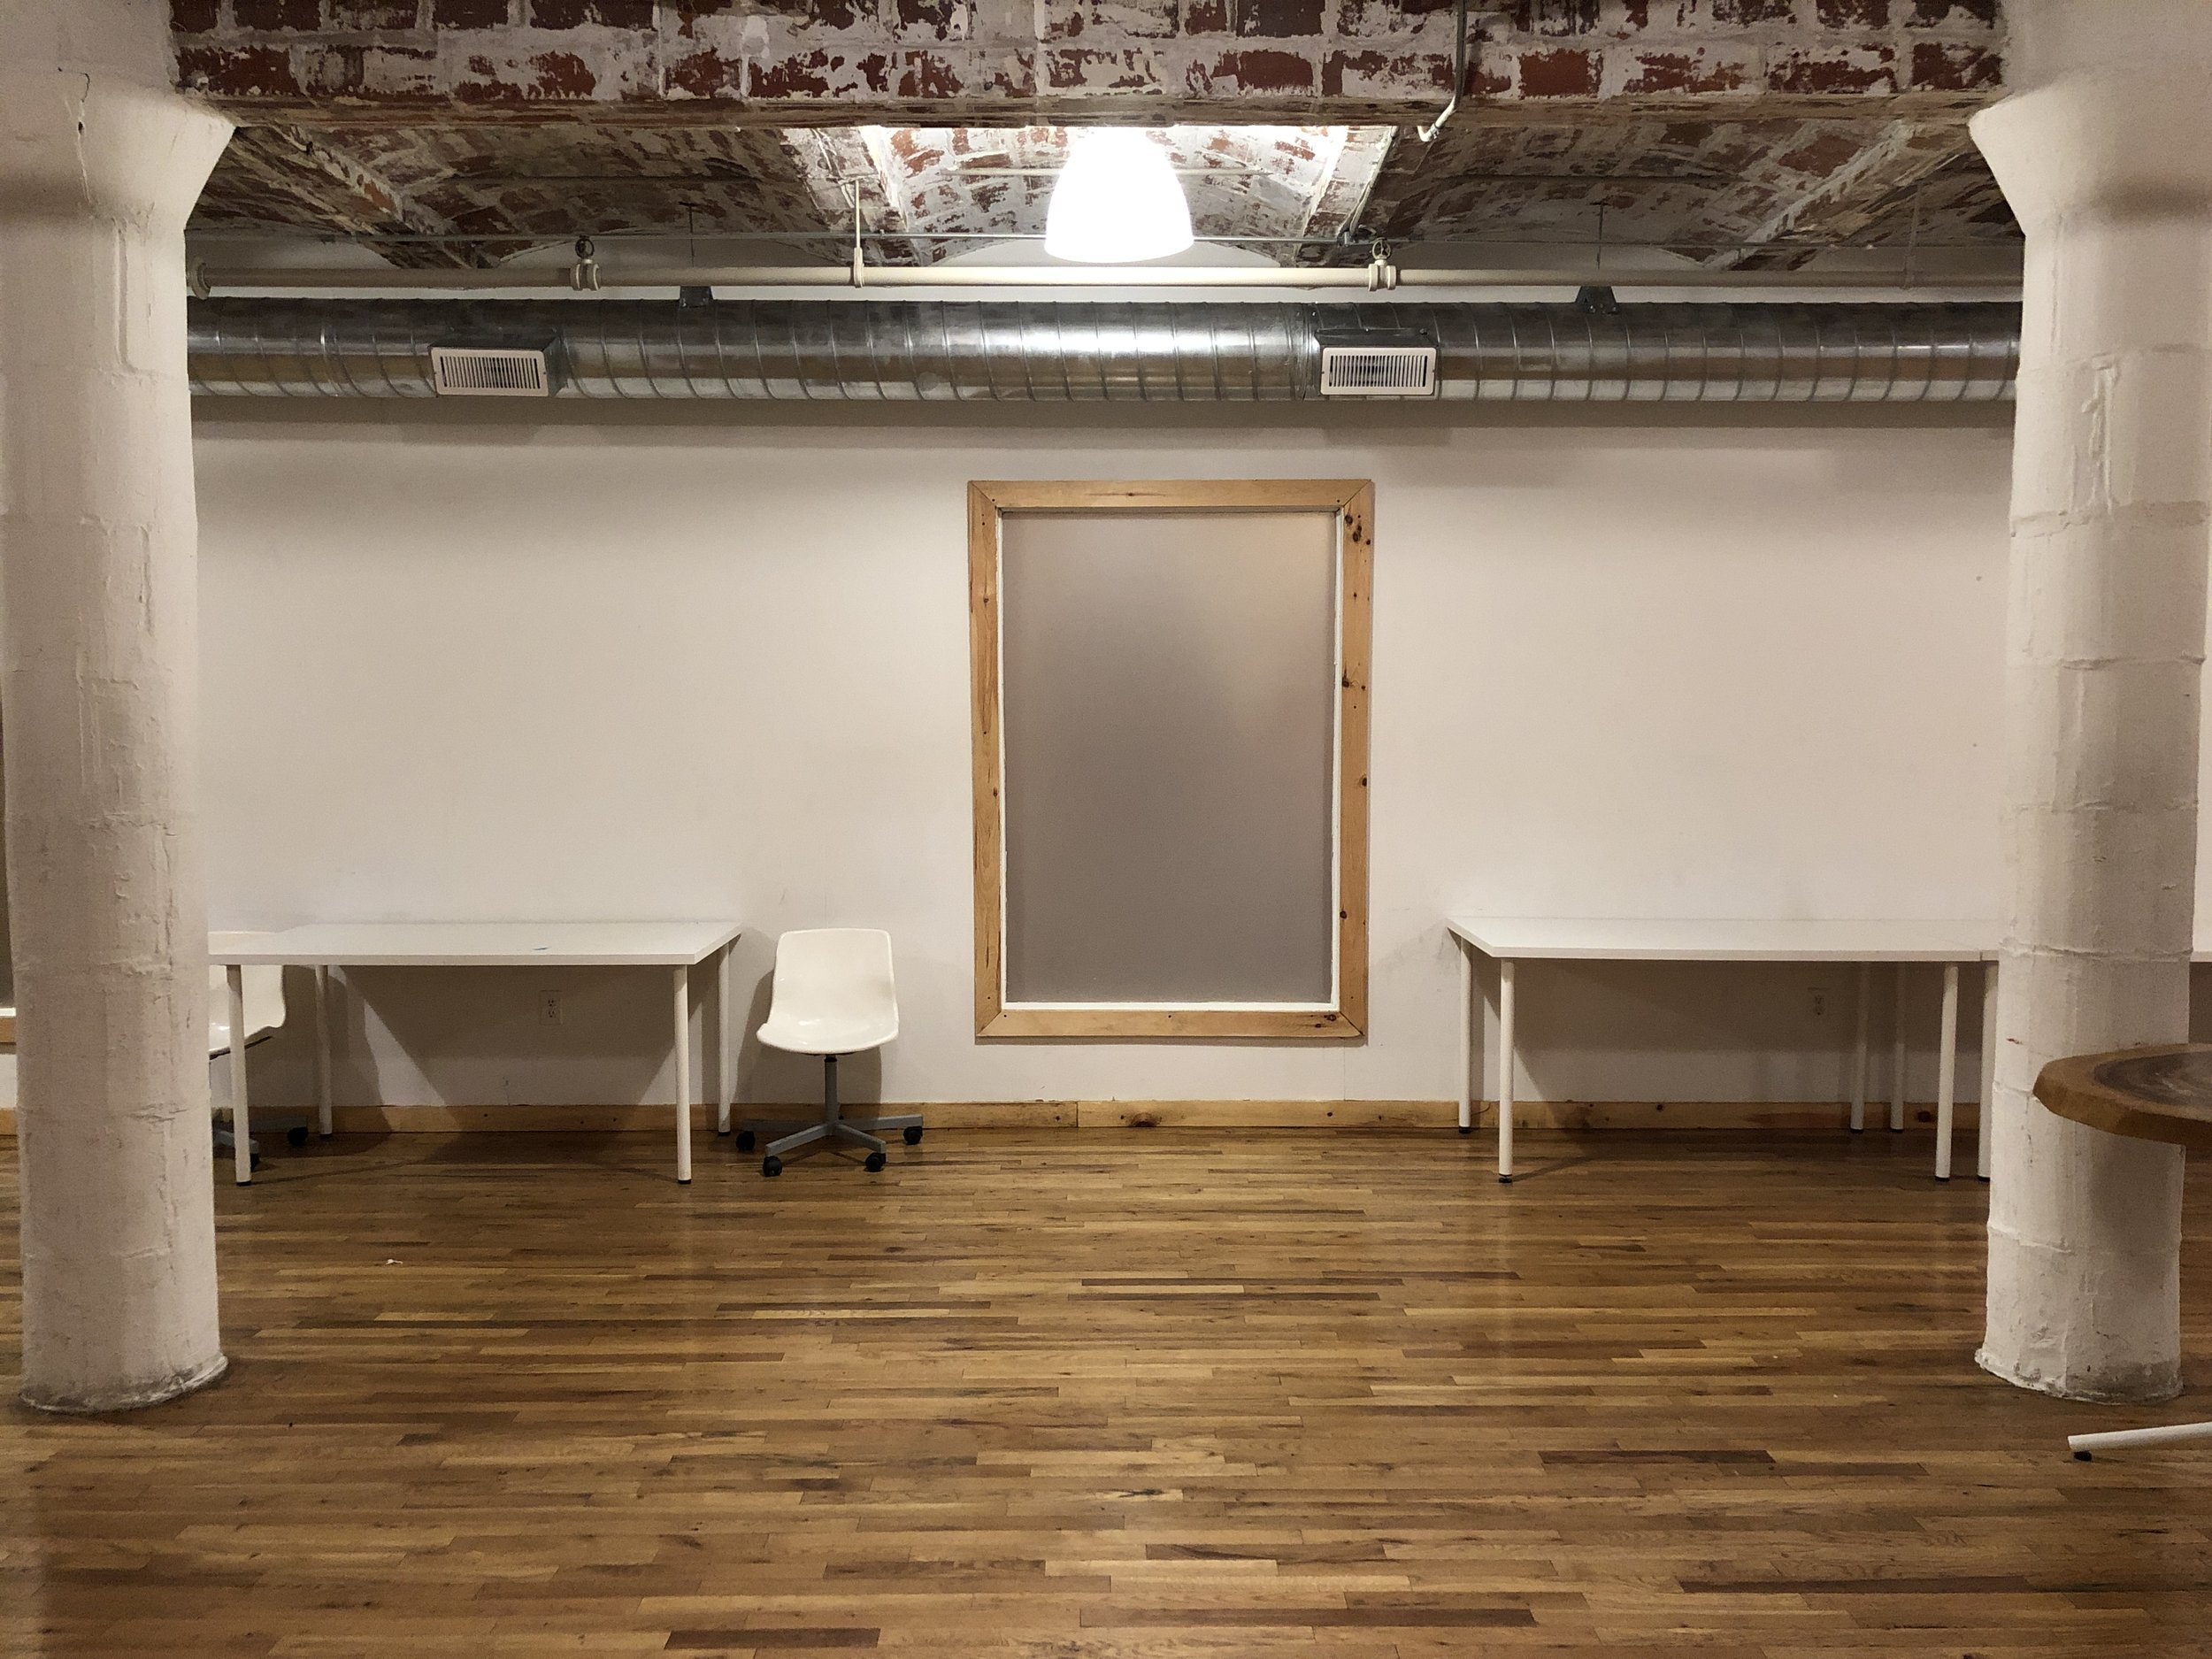 The UN Space - Located in prime dumbo, this space provides it all.6 massive 12+ft high display walls, 3 columns, 3 large windows, 8+ tables, multiple ceiling pipes, exposed brick ceiling, industrial lighting, 18+ chairs & easy access.